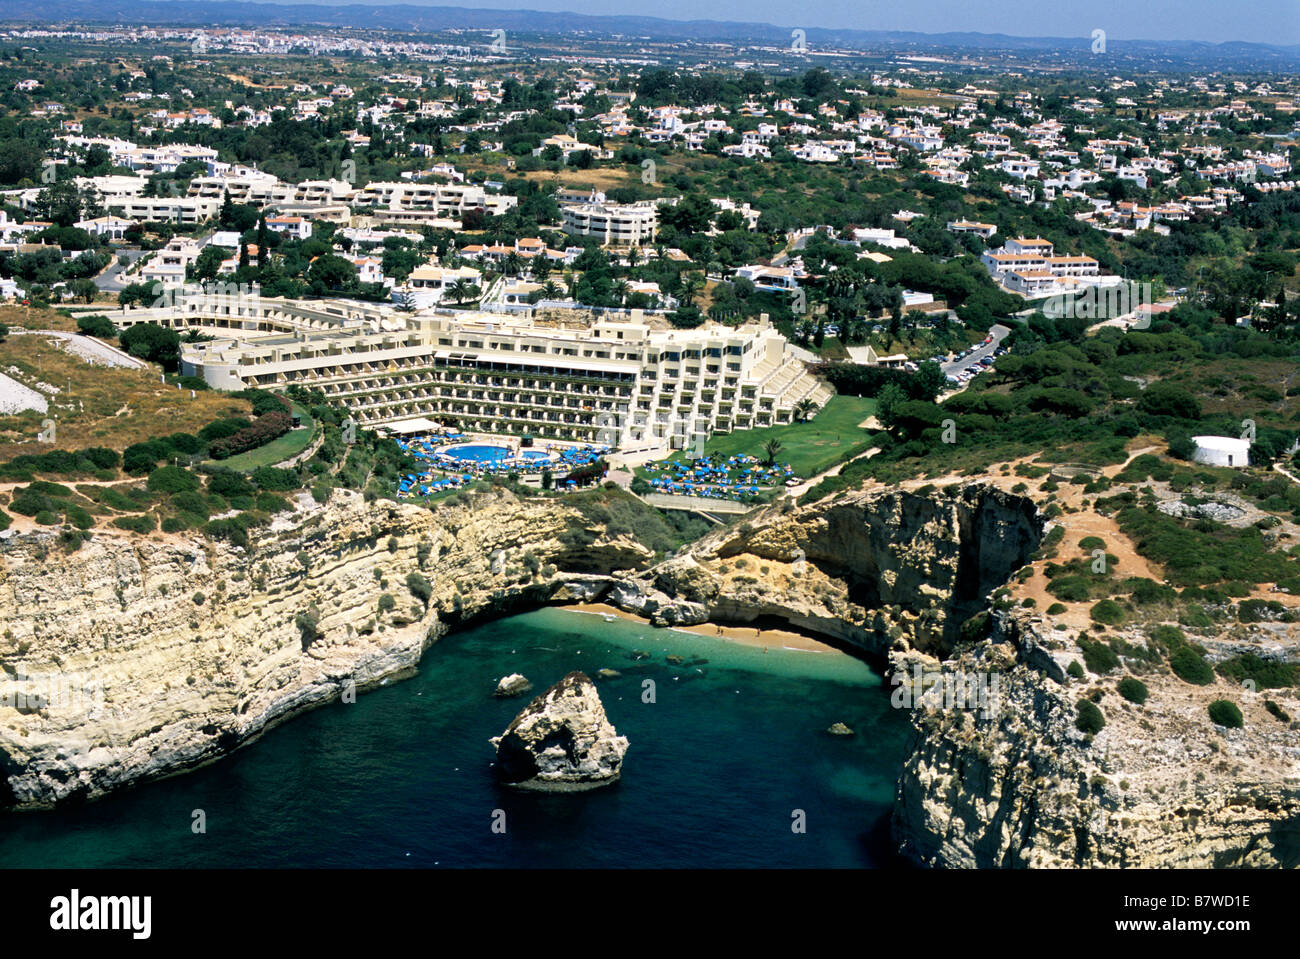 Tivoli Hotels In The Algarve An Aerial View Of The 4 Star Tivoli Carvoeiro Hotel Which